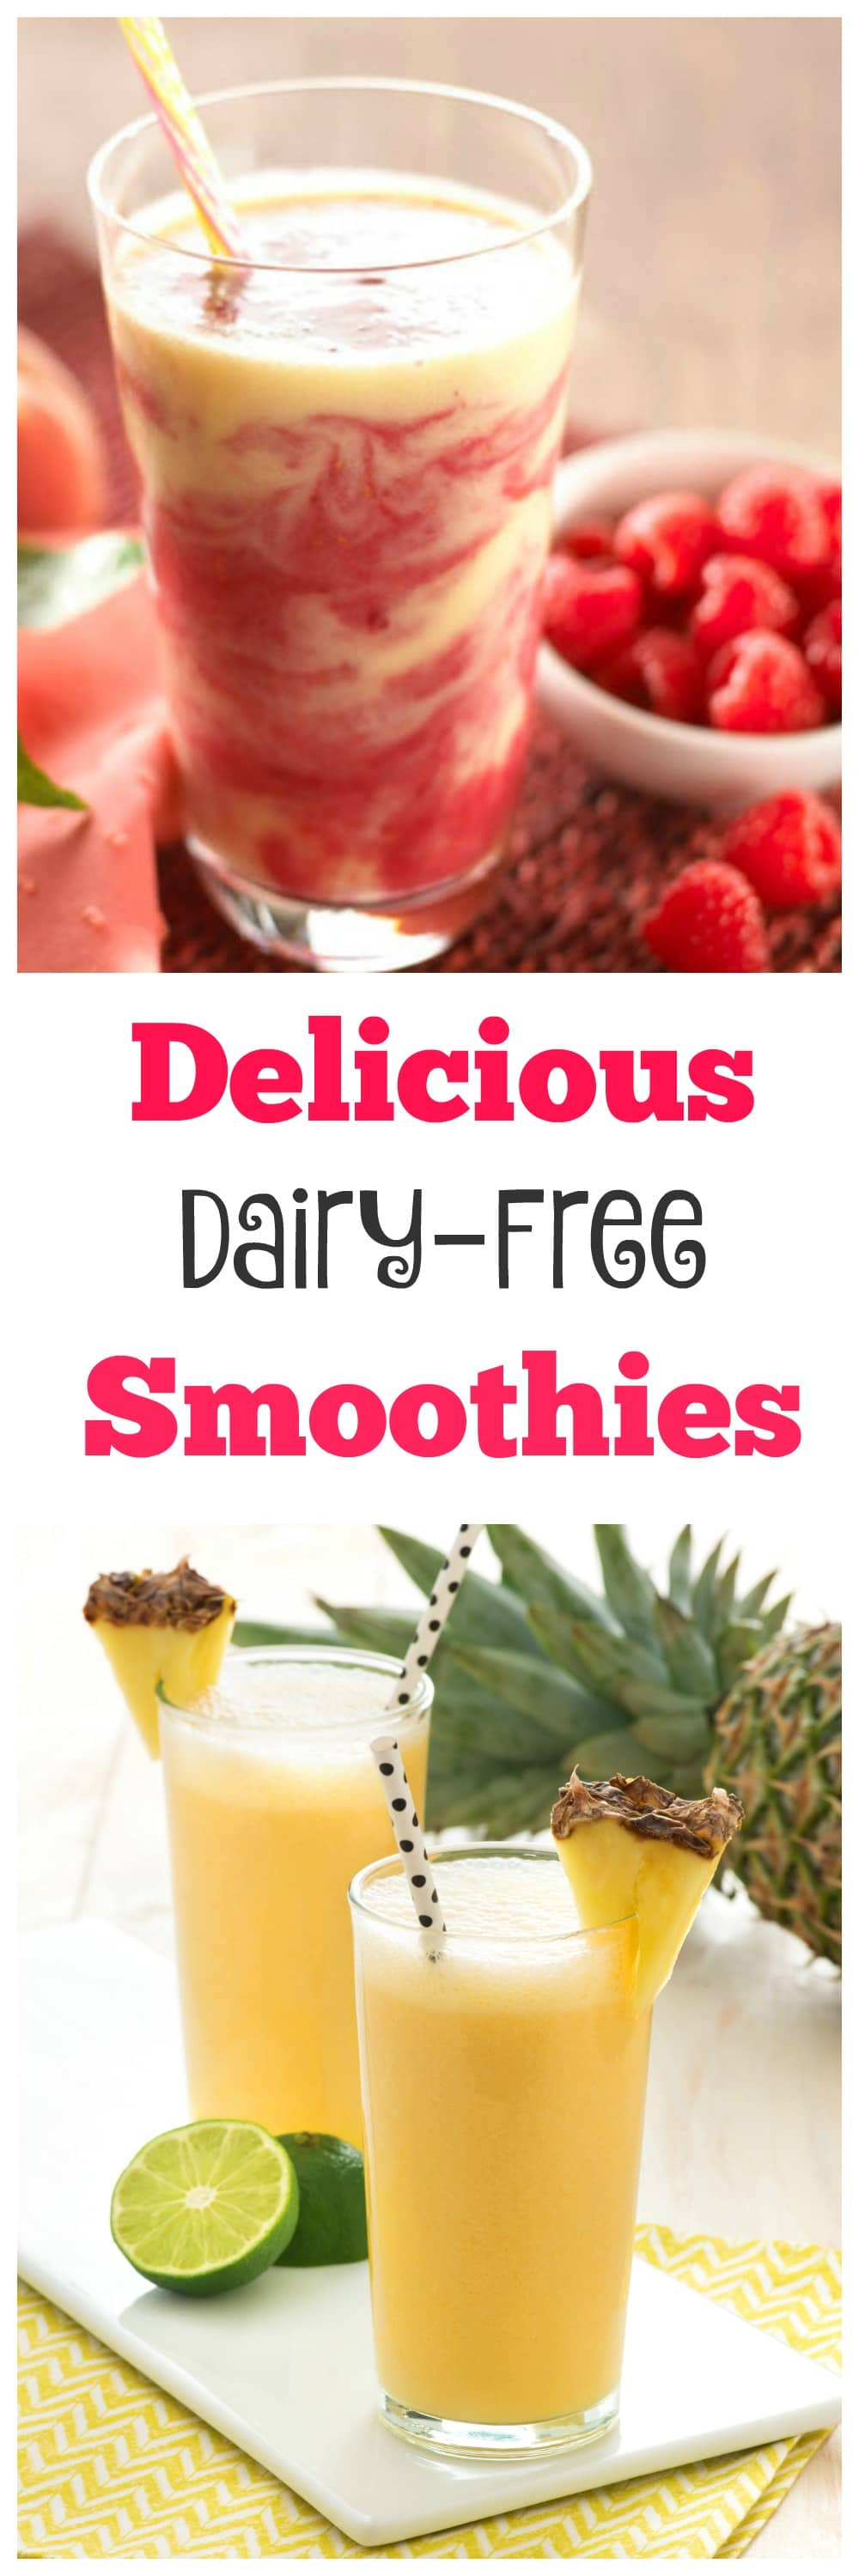 Delicious Dairy-Free Smoothies